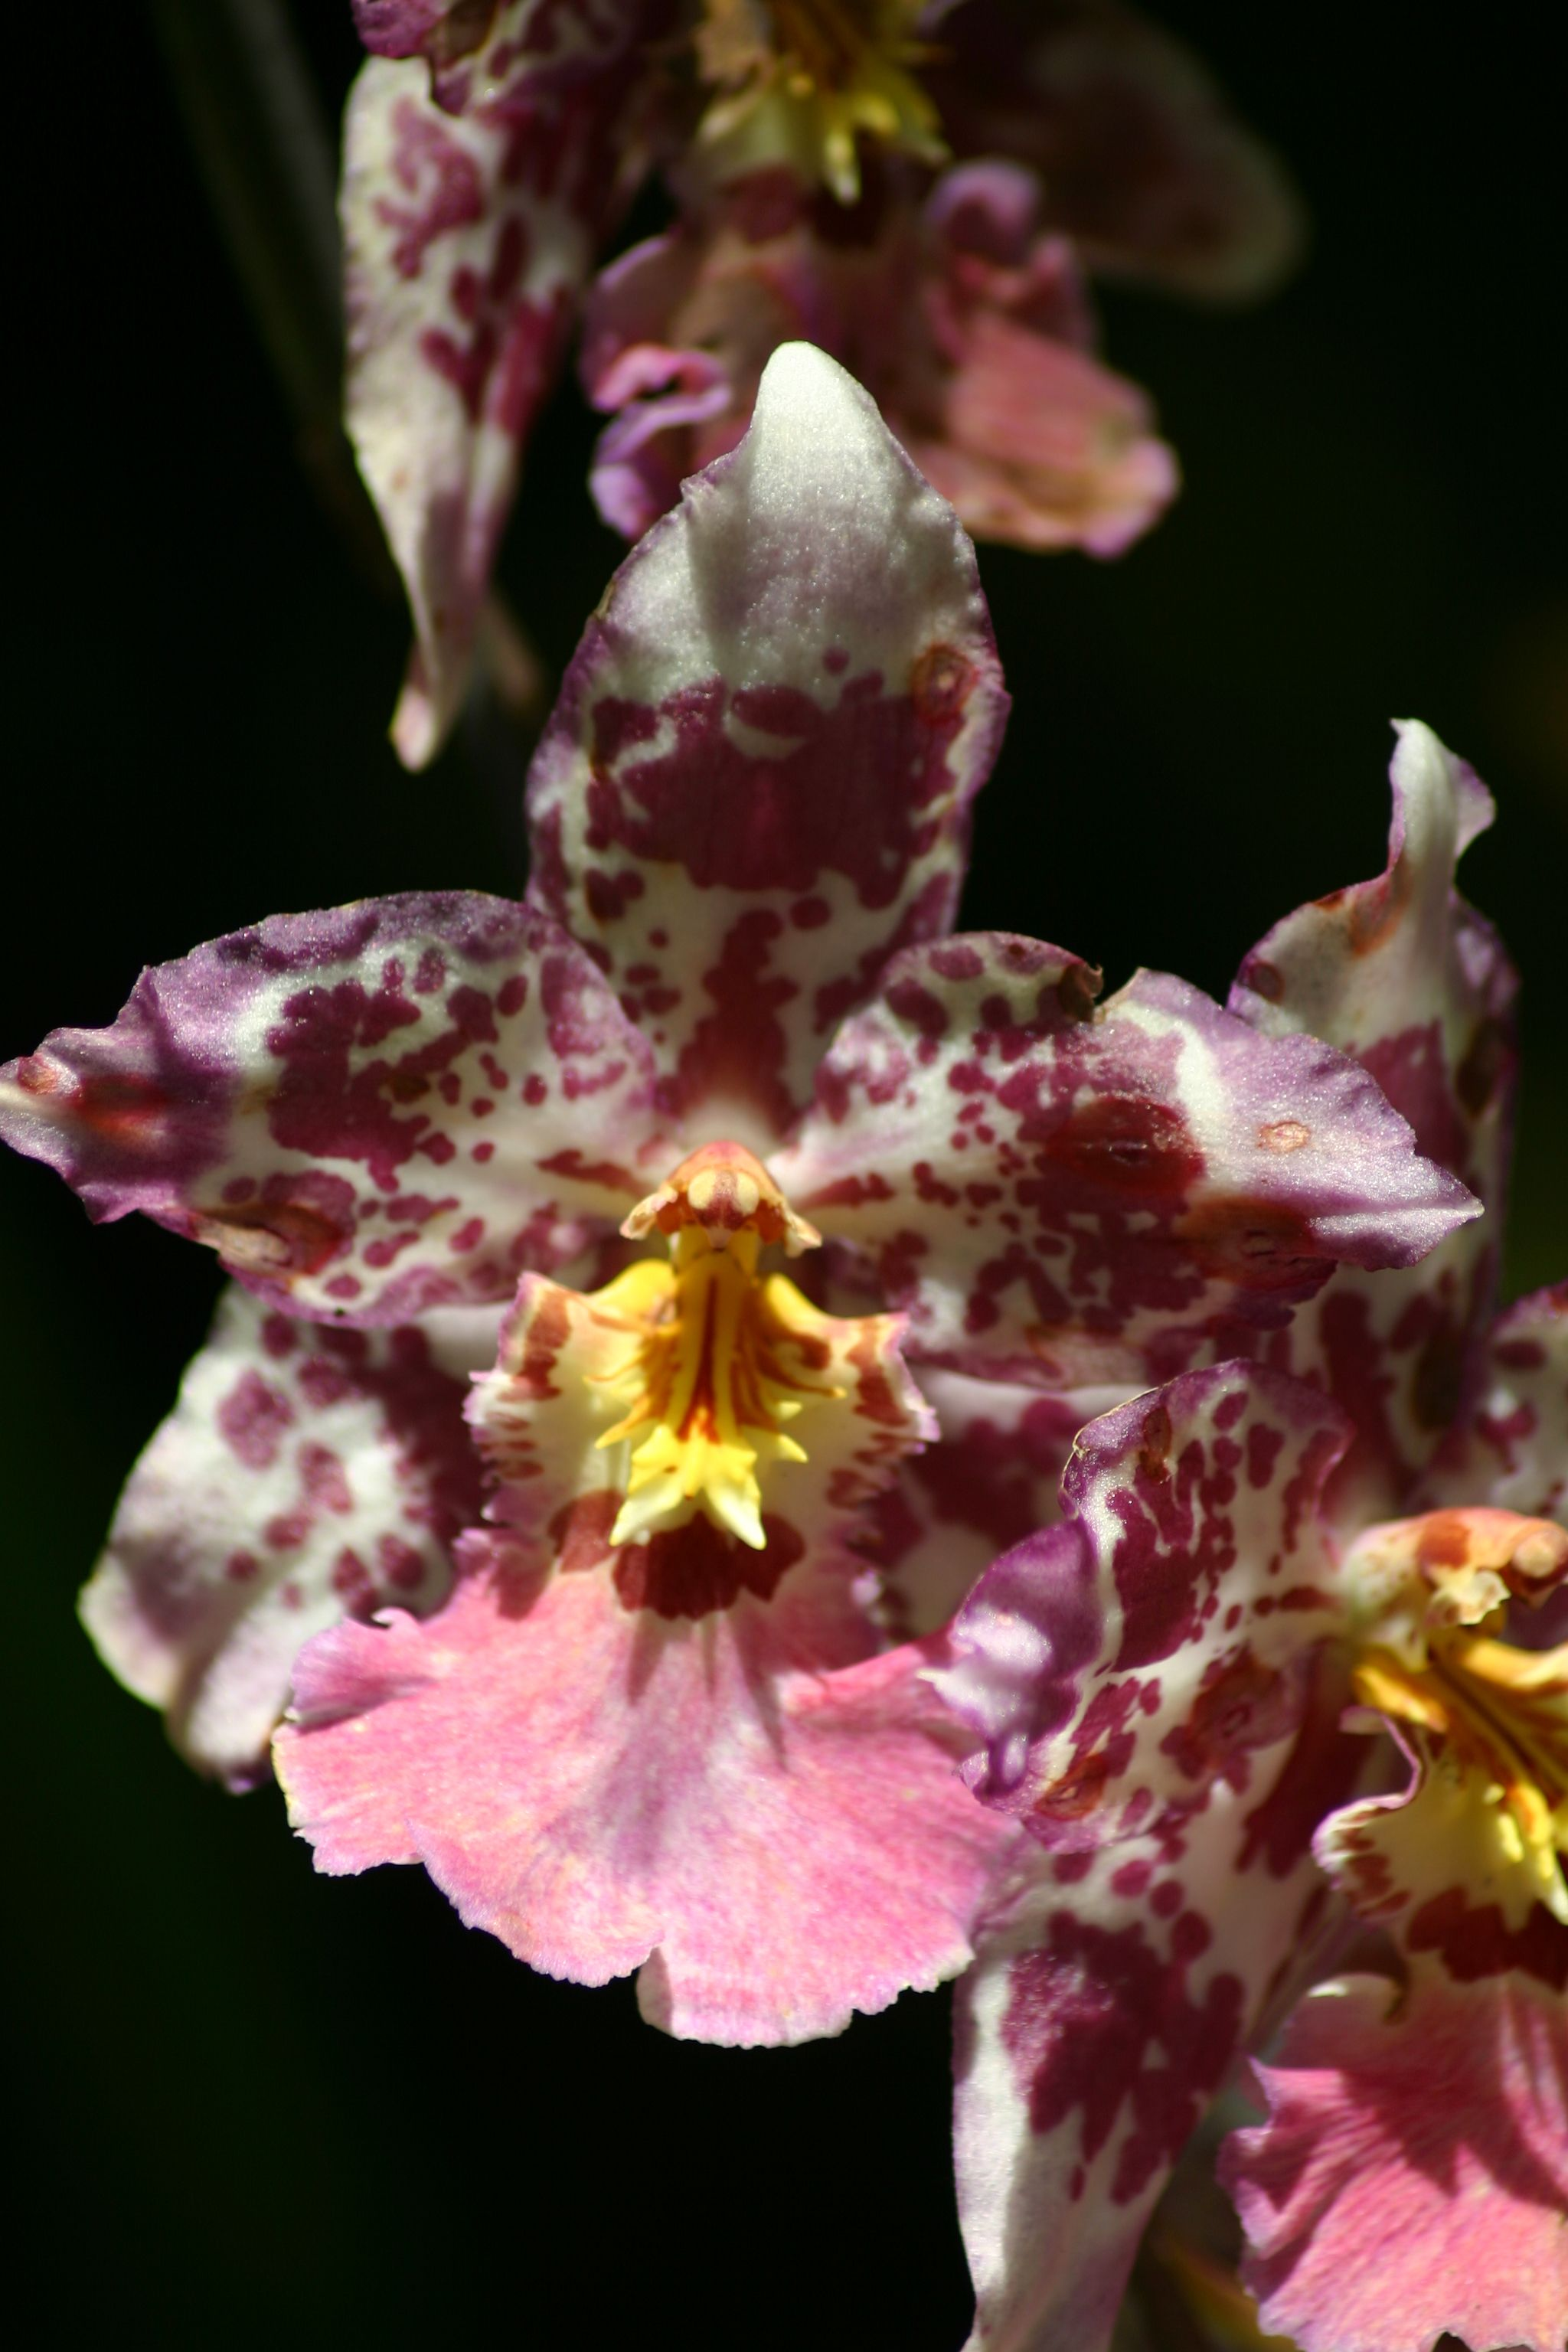 The meaning of the flower: an orchid is a symbol of love and passion